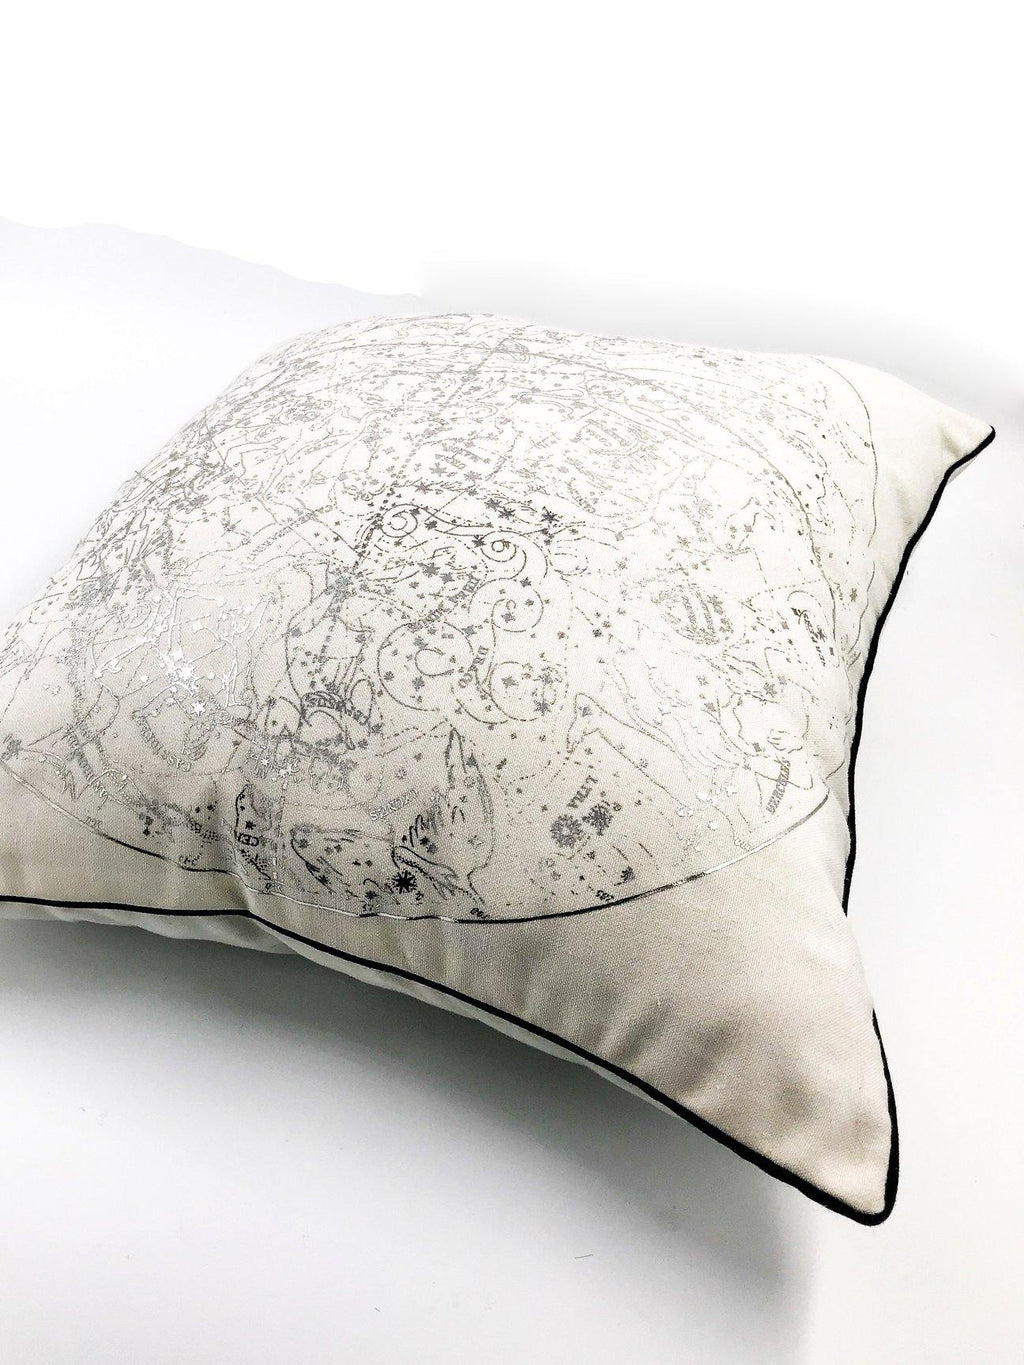 Celestial Scatter Cushion Silver - Danielle Frylinck Design